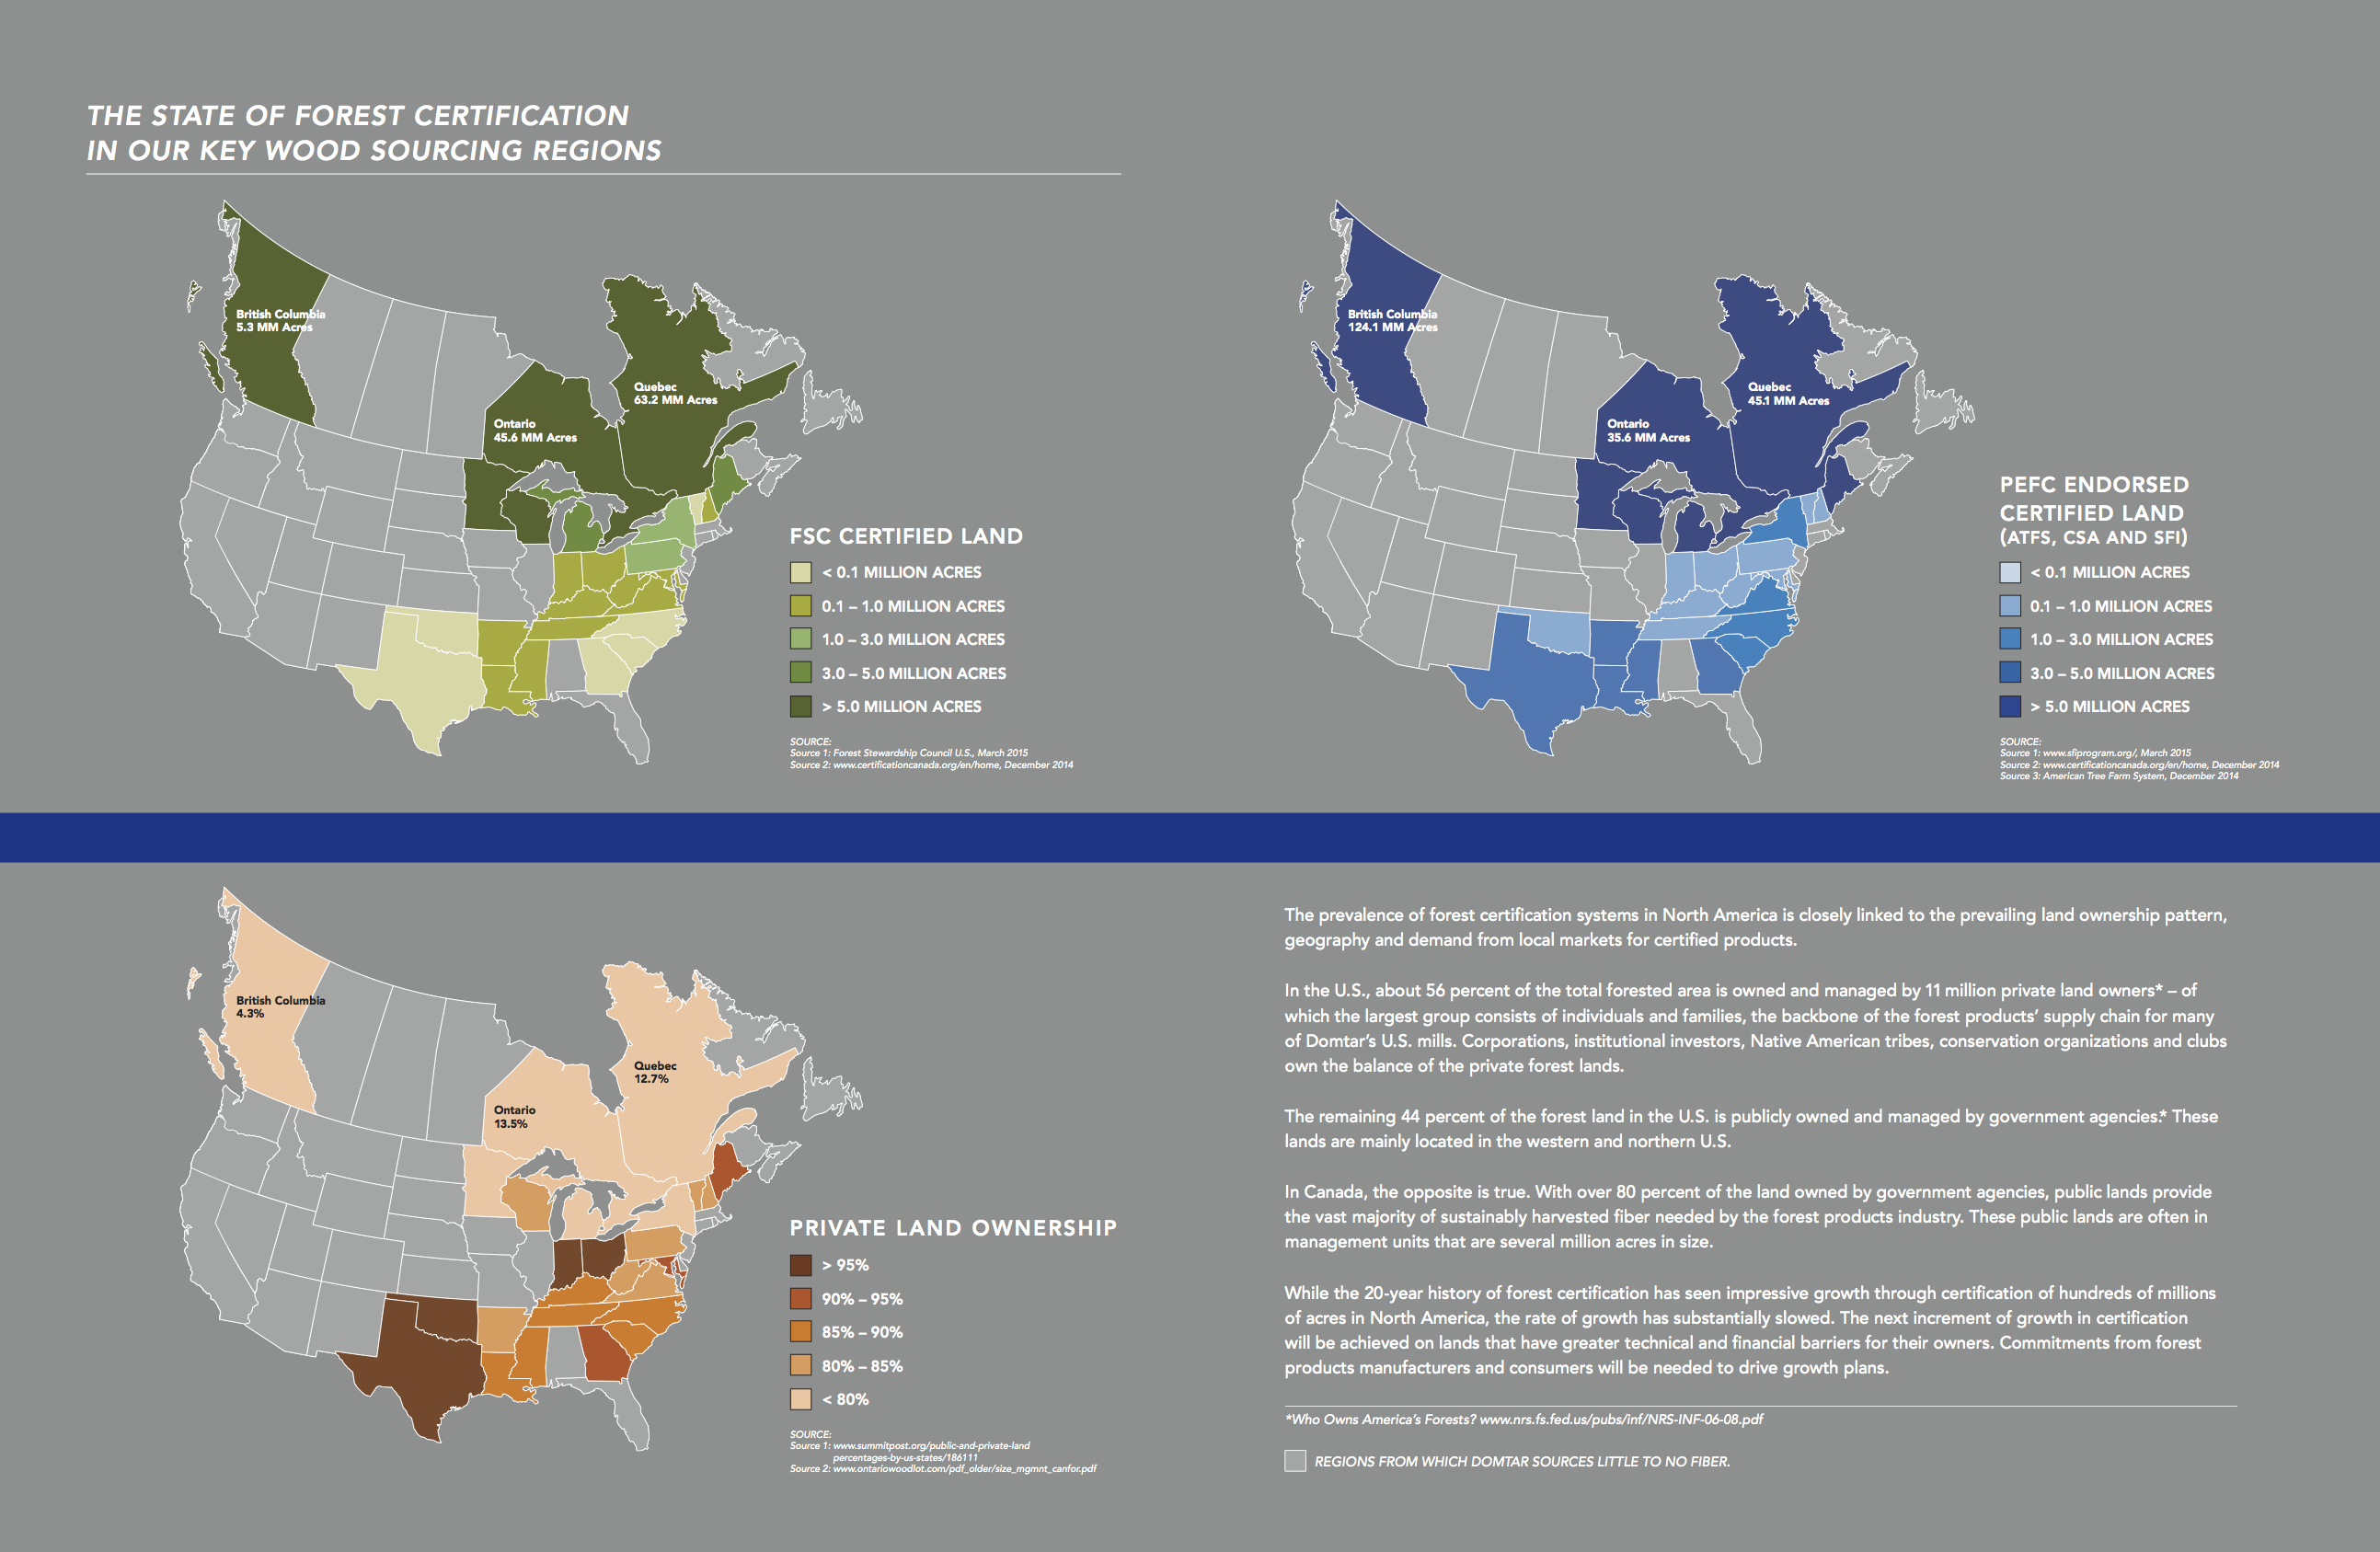 Us Map Certification.The State Of Forest Certification In Key U S Wood Sourcing Regions